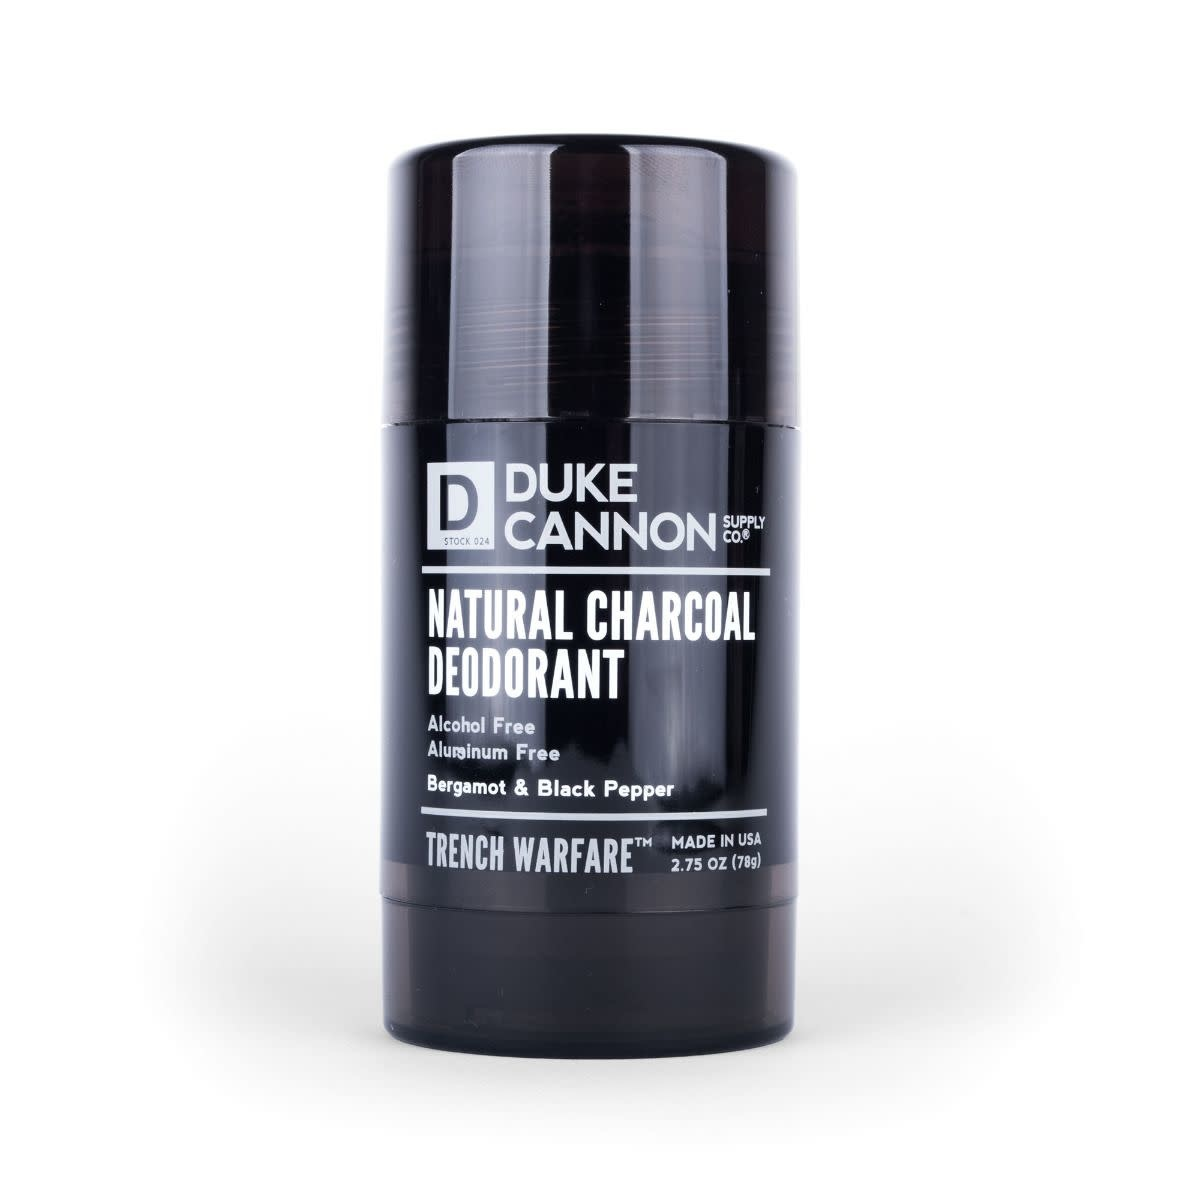 Duke Cannon Trench Warfare Bergamot & Black Pepper Natural Charcoal Deodorant